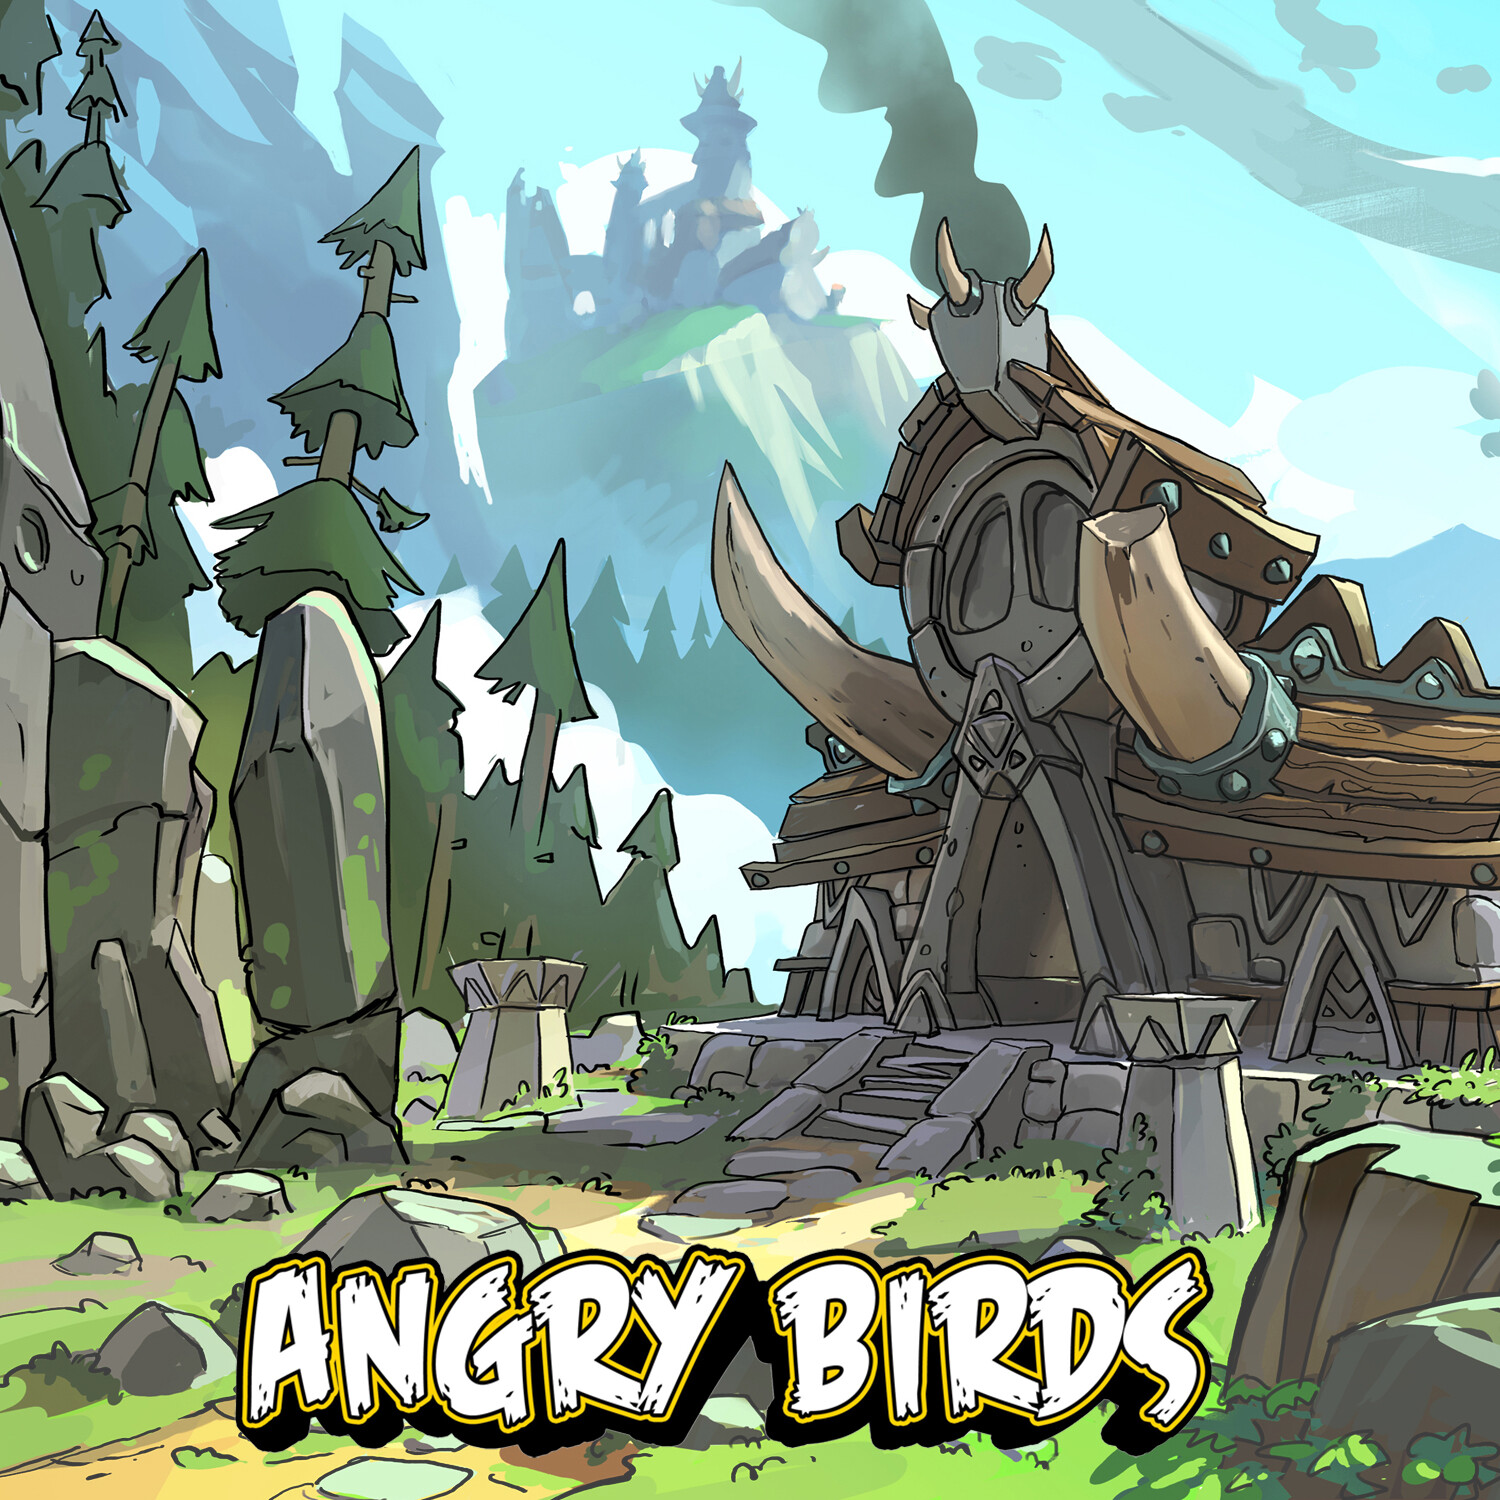 ANGRY BIRDS project